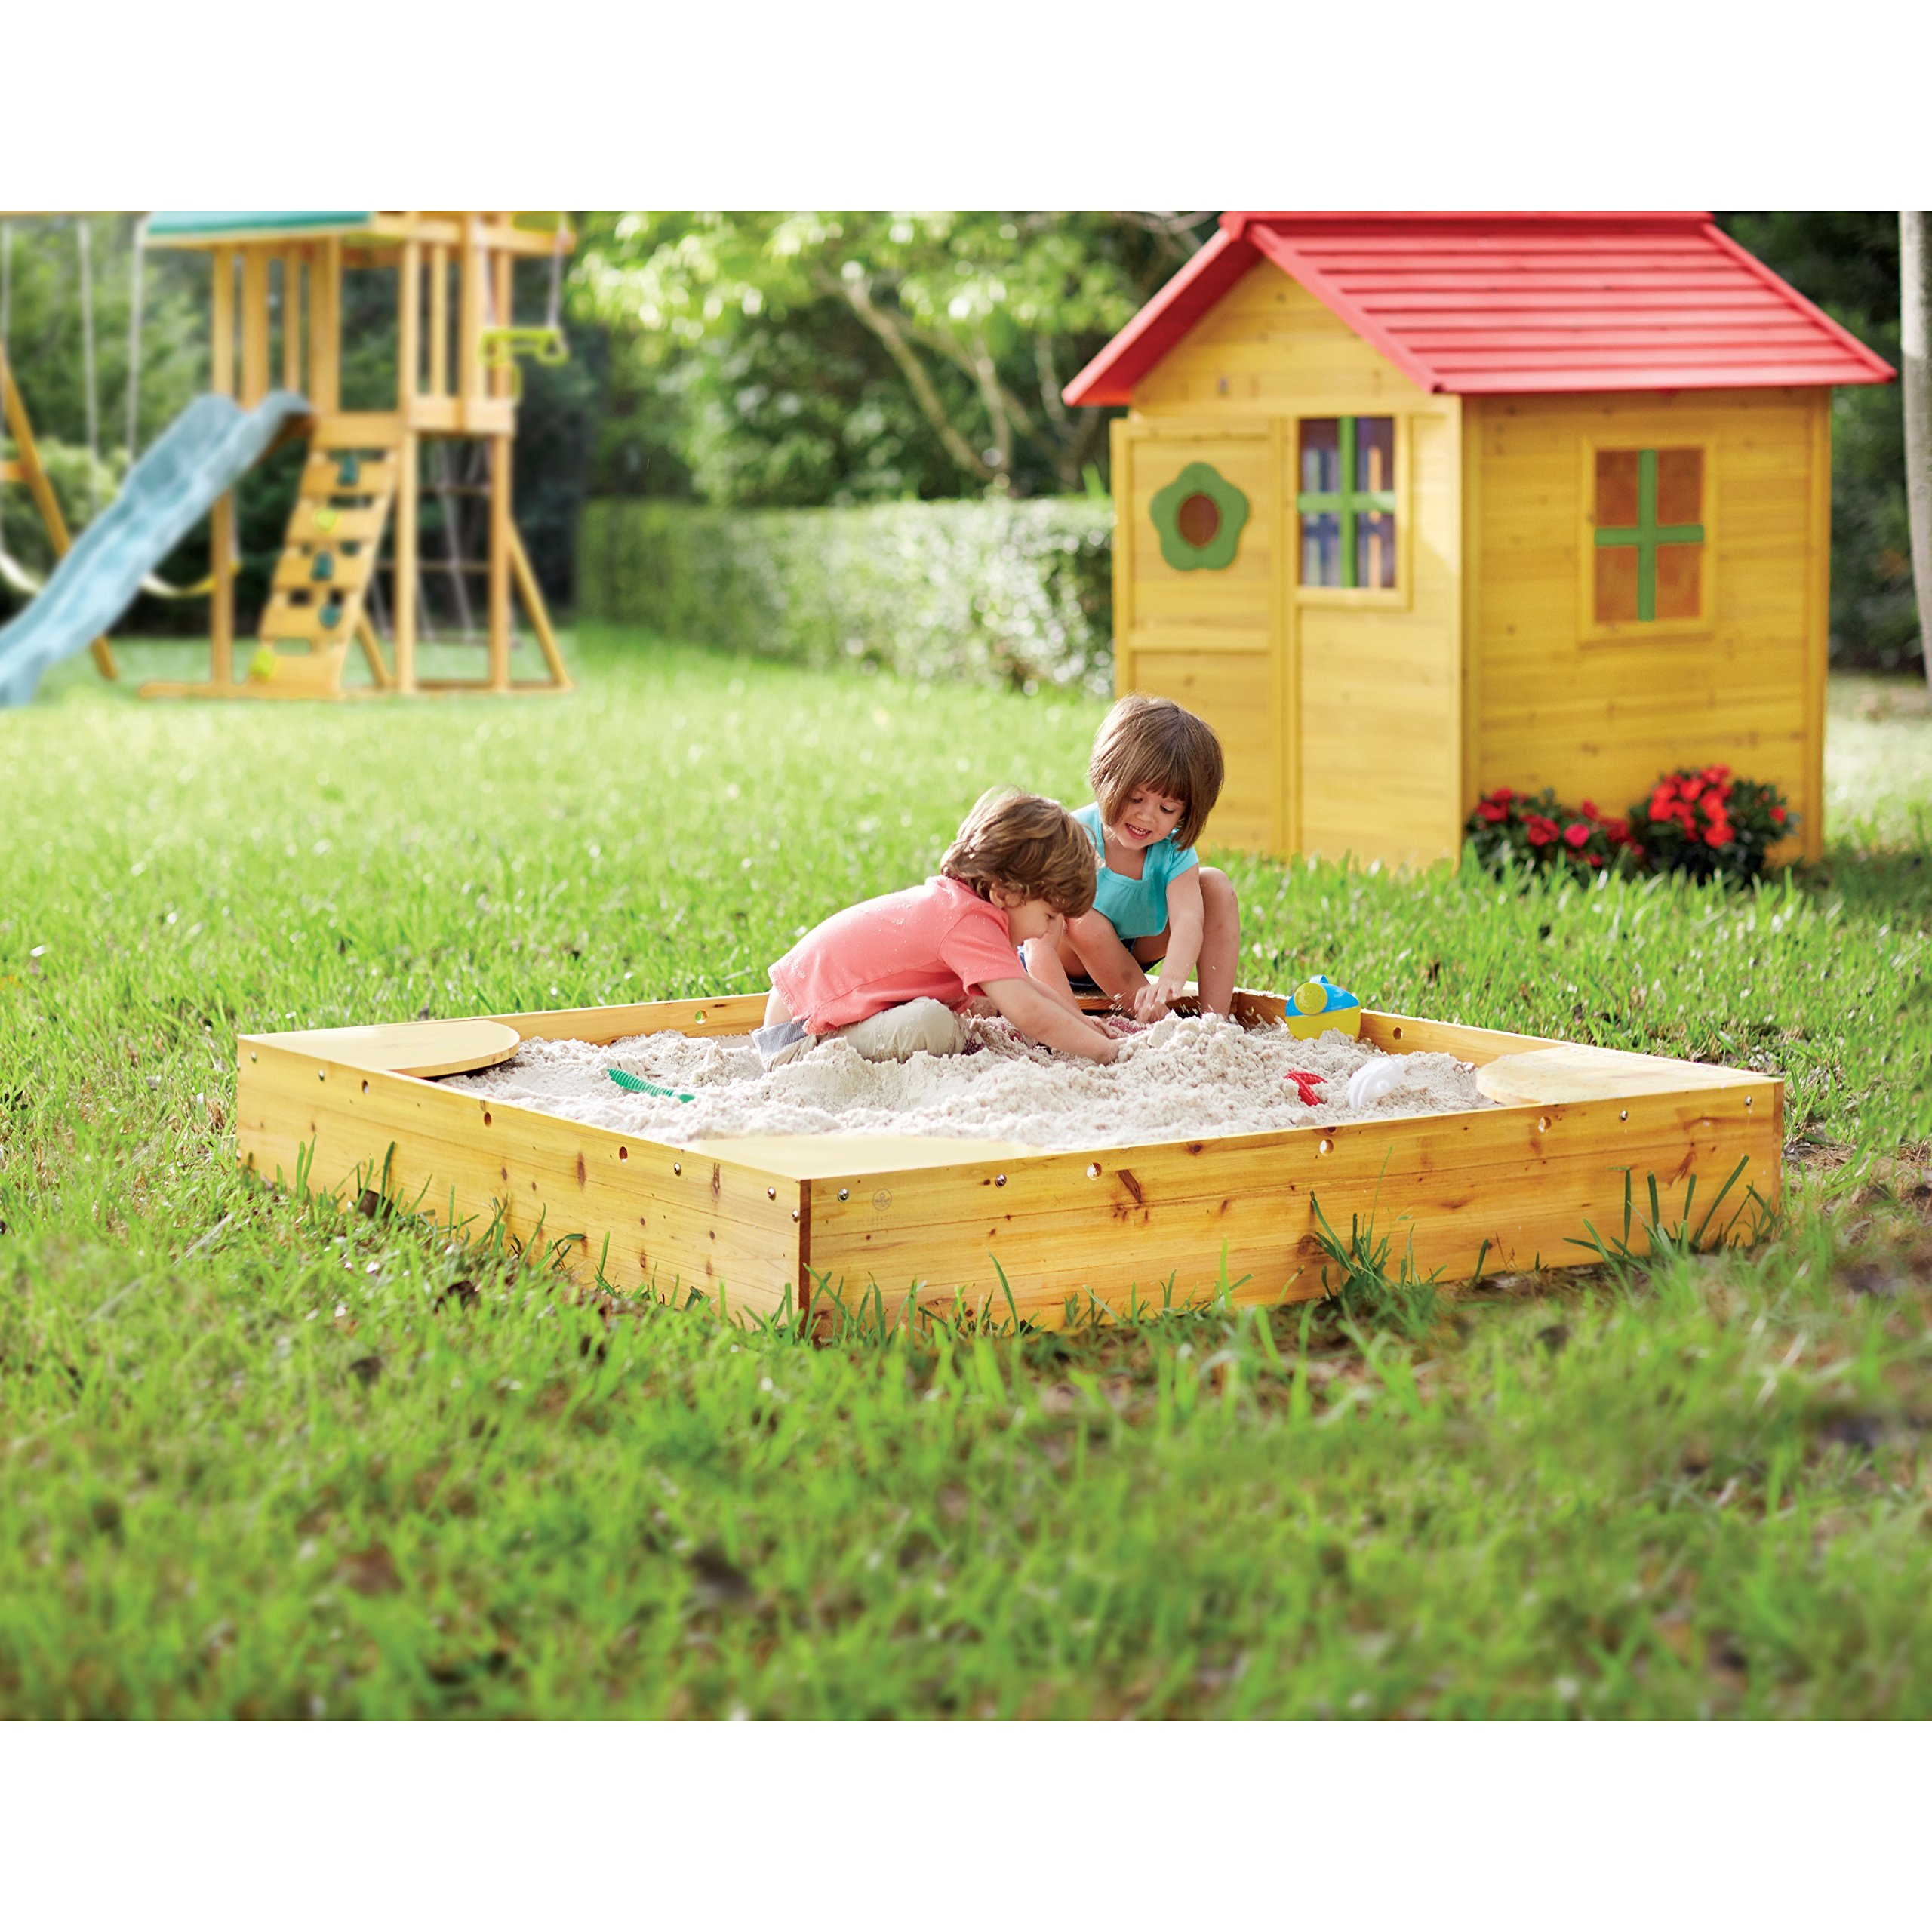 Children's Style Wooden Stellan Backyard 5' Square Sandbox With Cover (VVRO1594). Corners Double As Convenient Seating. Weather Resistant. 8.46'' D X 60'' W X 60'' L